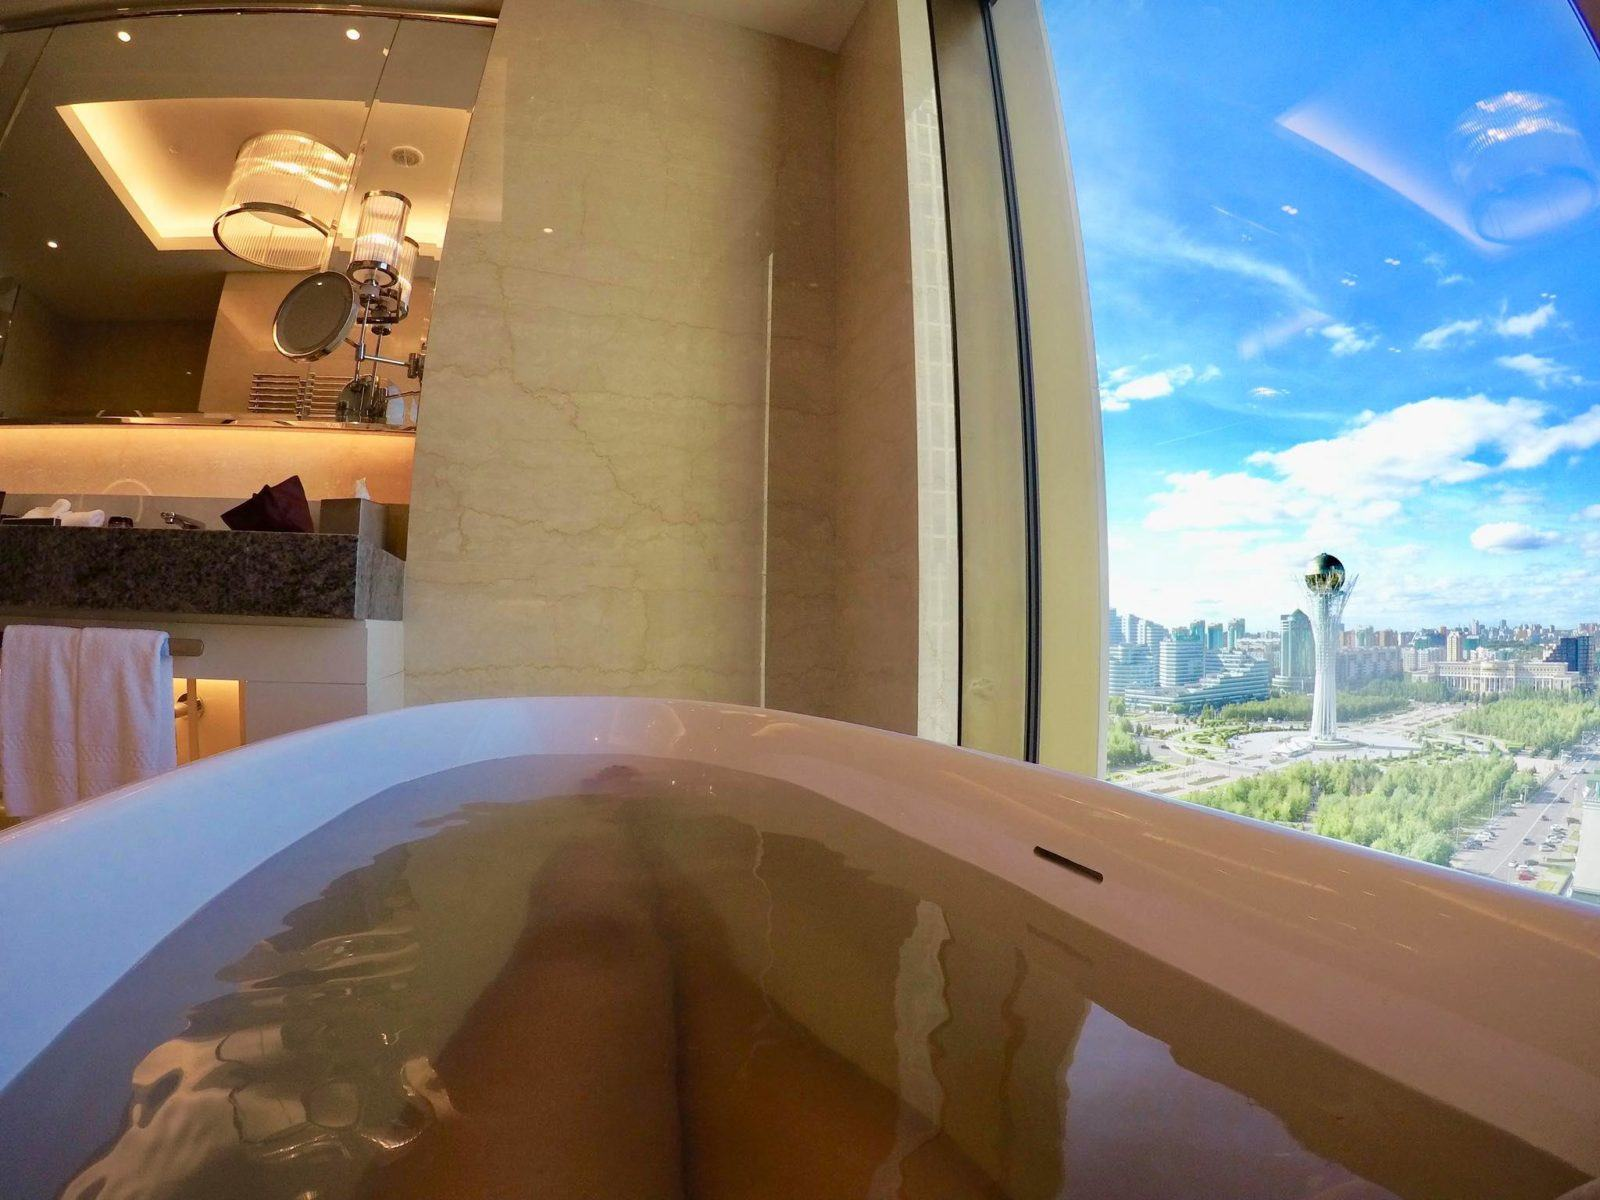 My Experience Staying at The Ritz Carlton Astana13